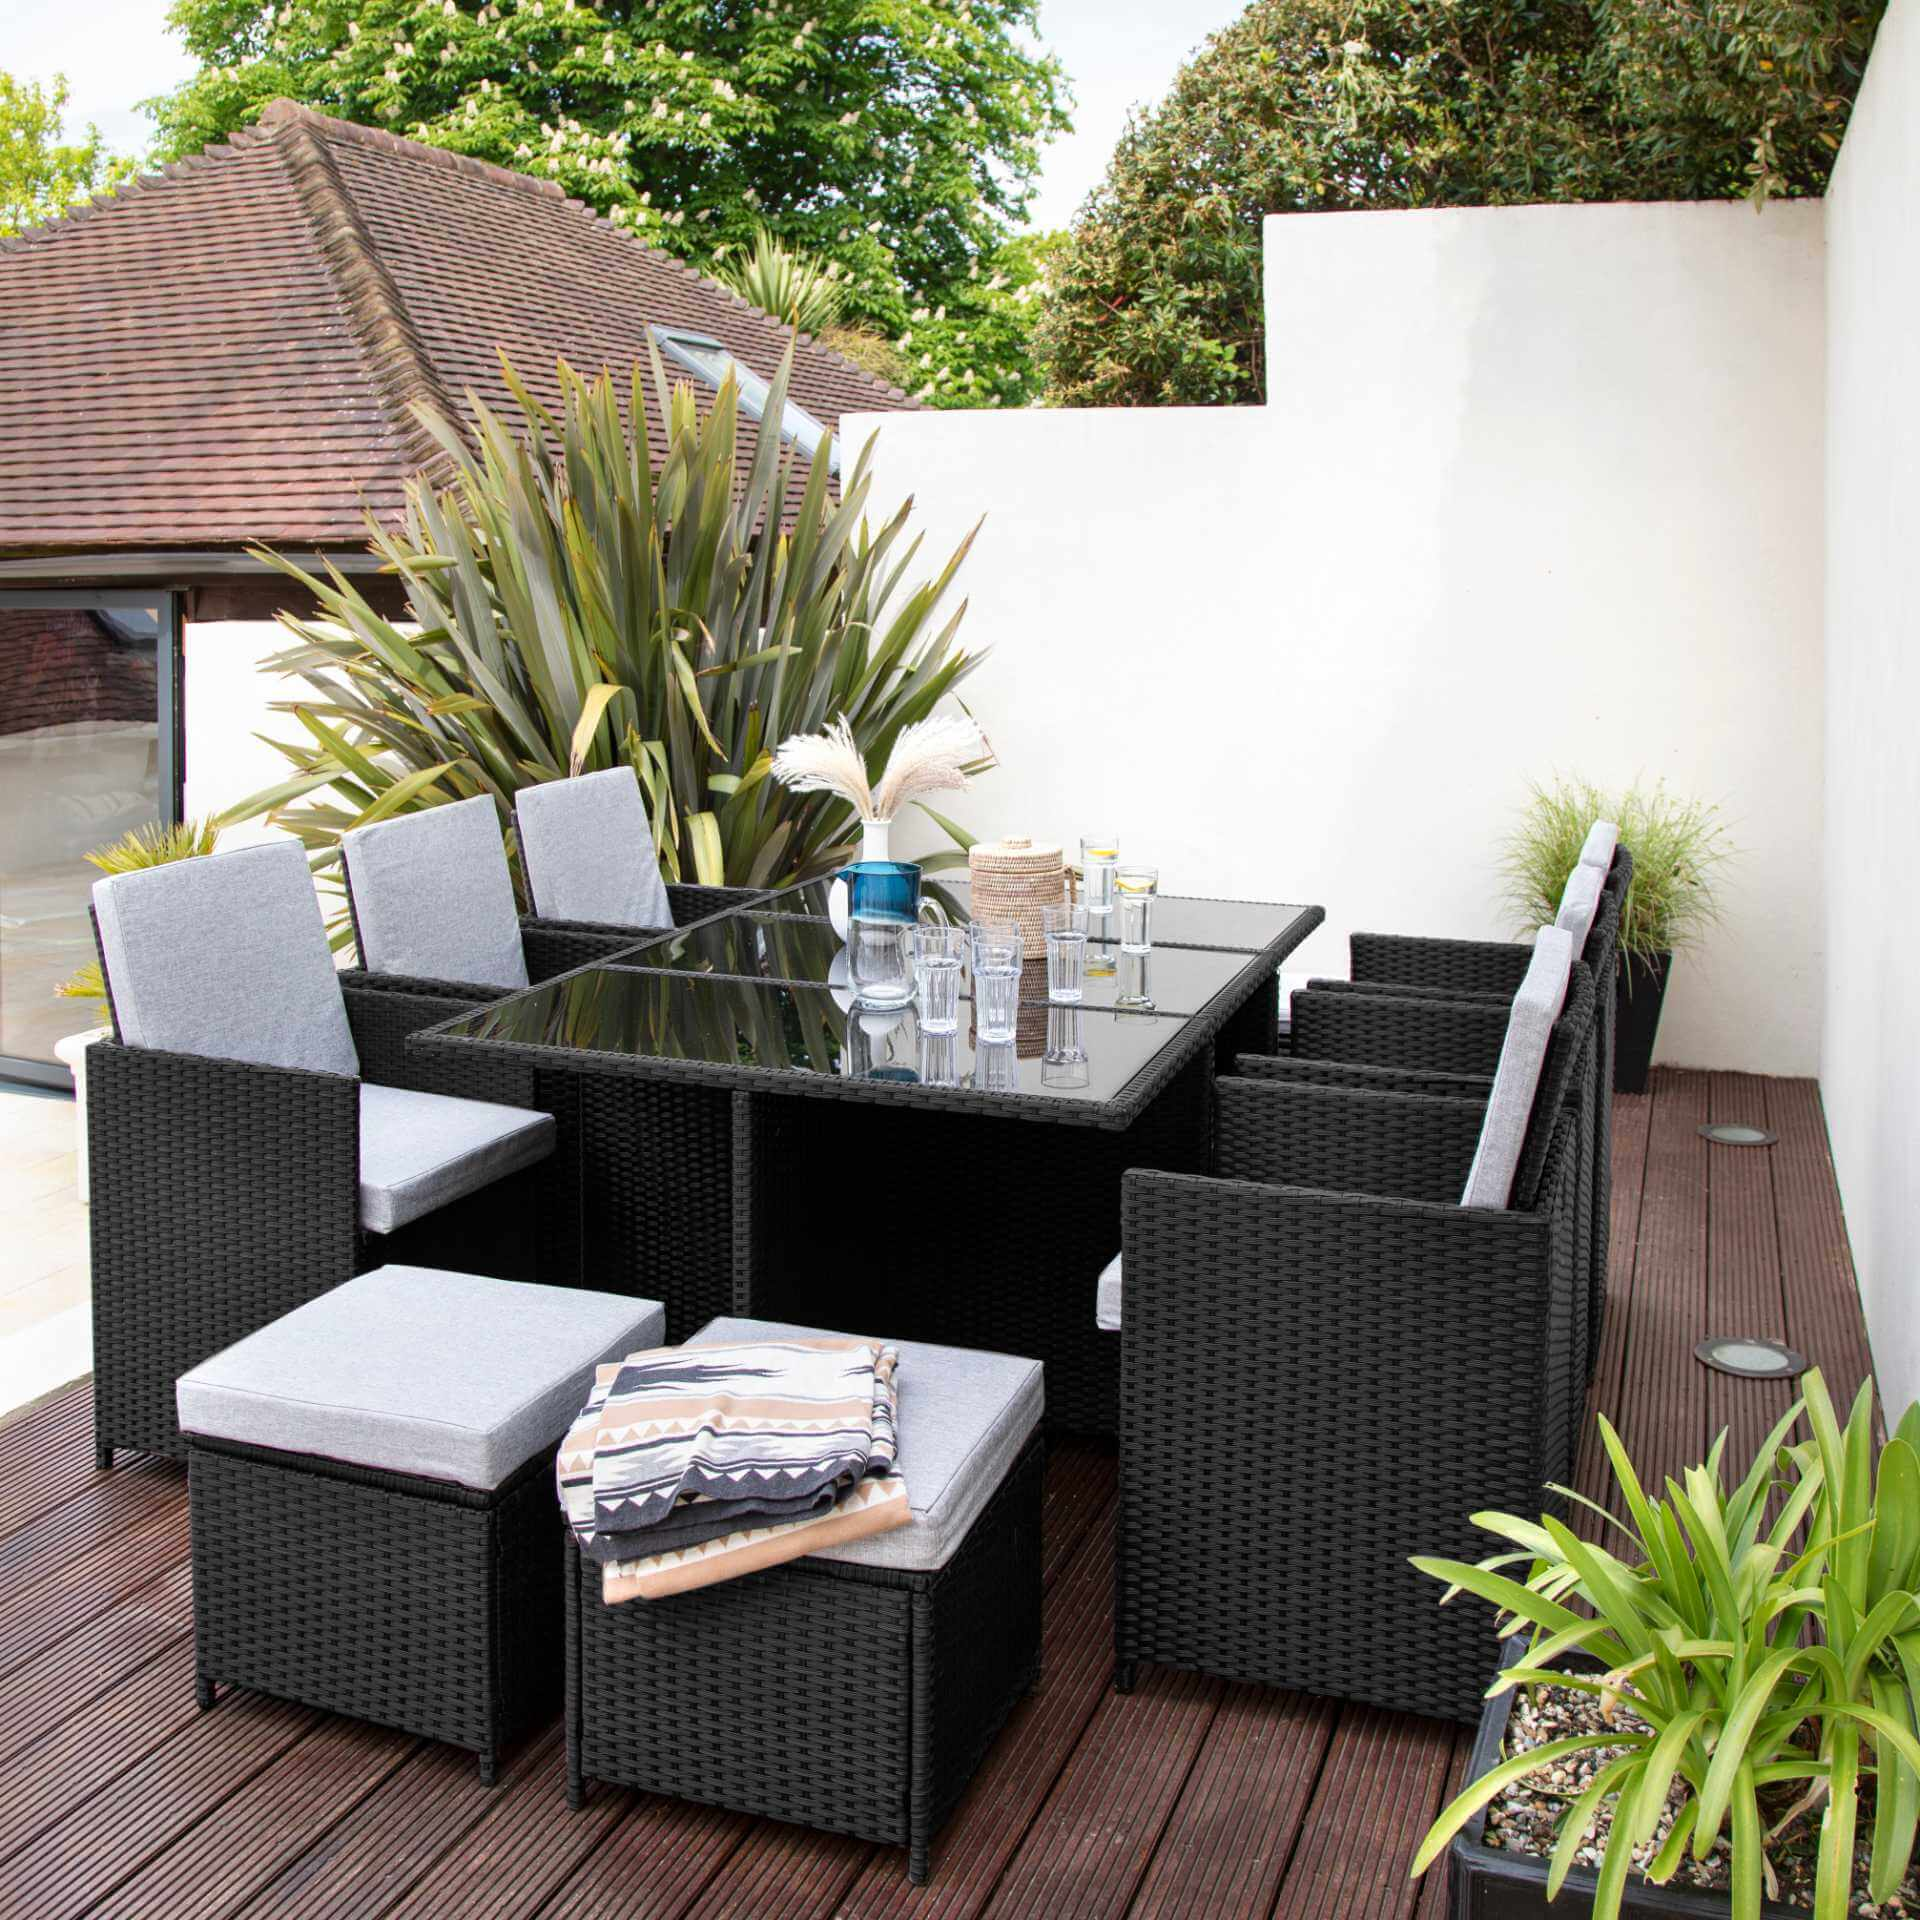 10 Seater Rattan Cube Outdoor Dining Set - Black Weave